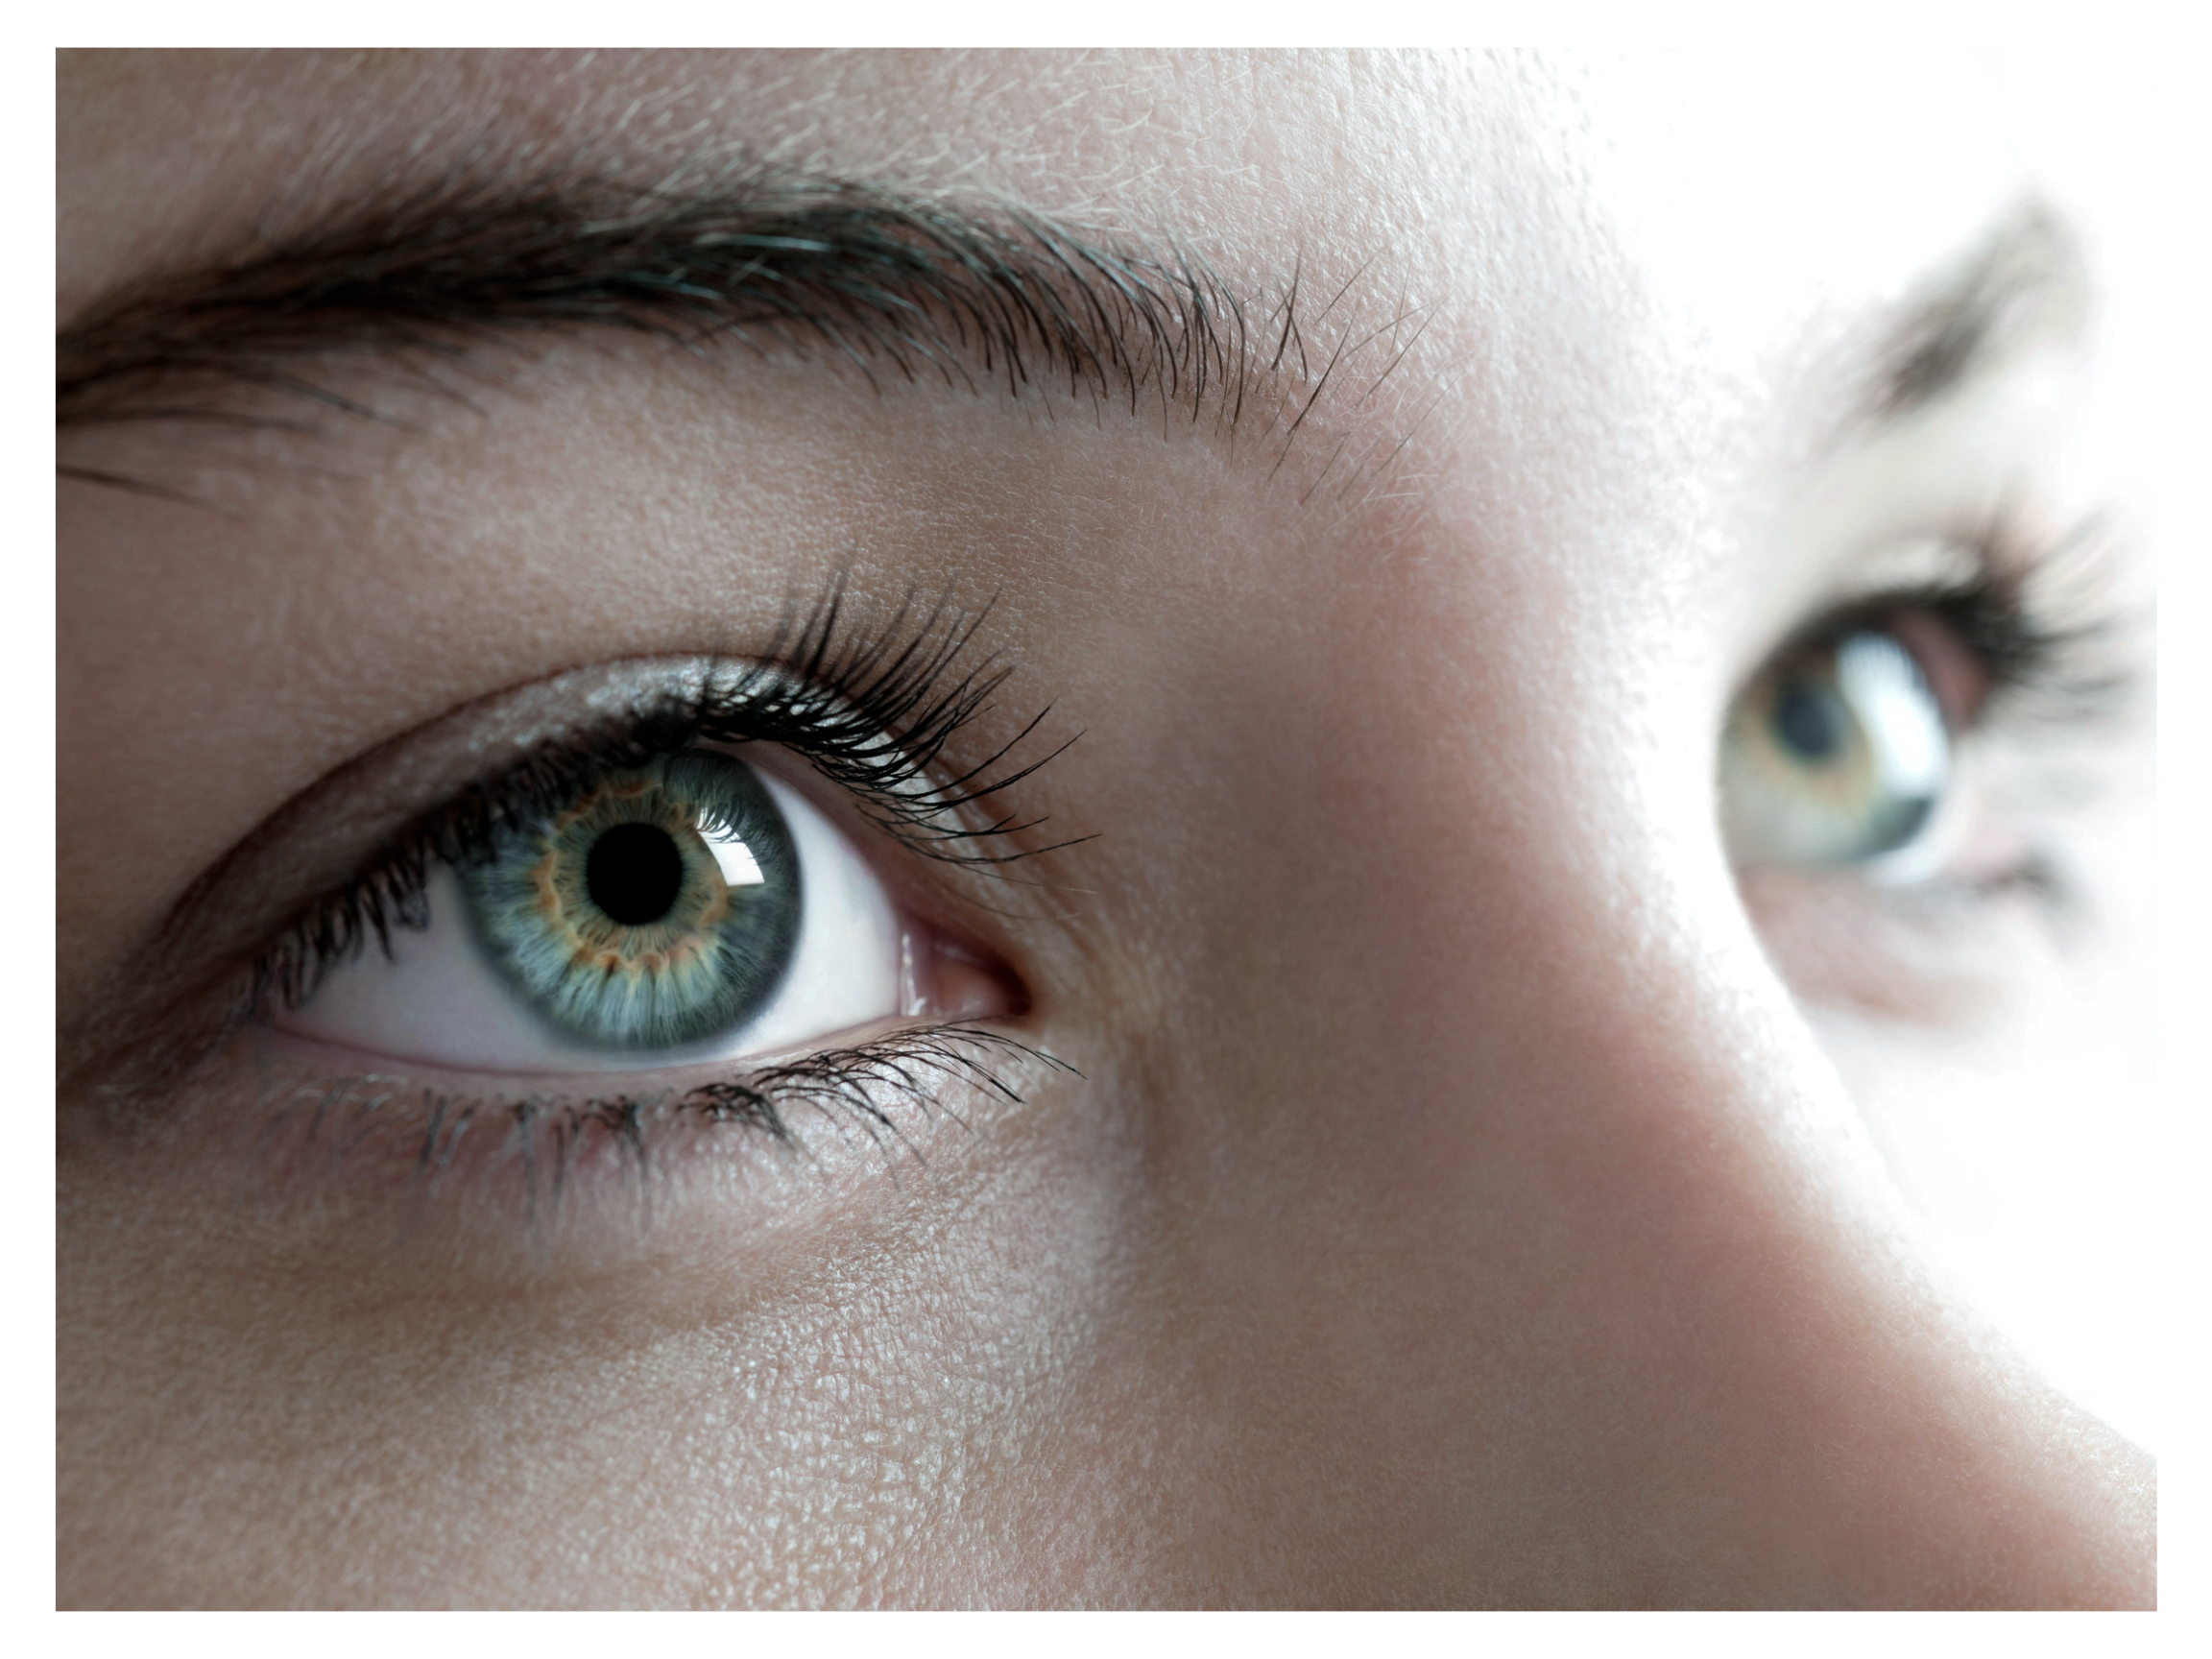 A close up shot of a woman's eyes looking off into the distance.